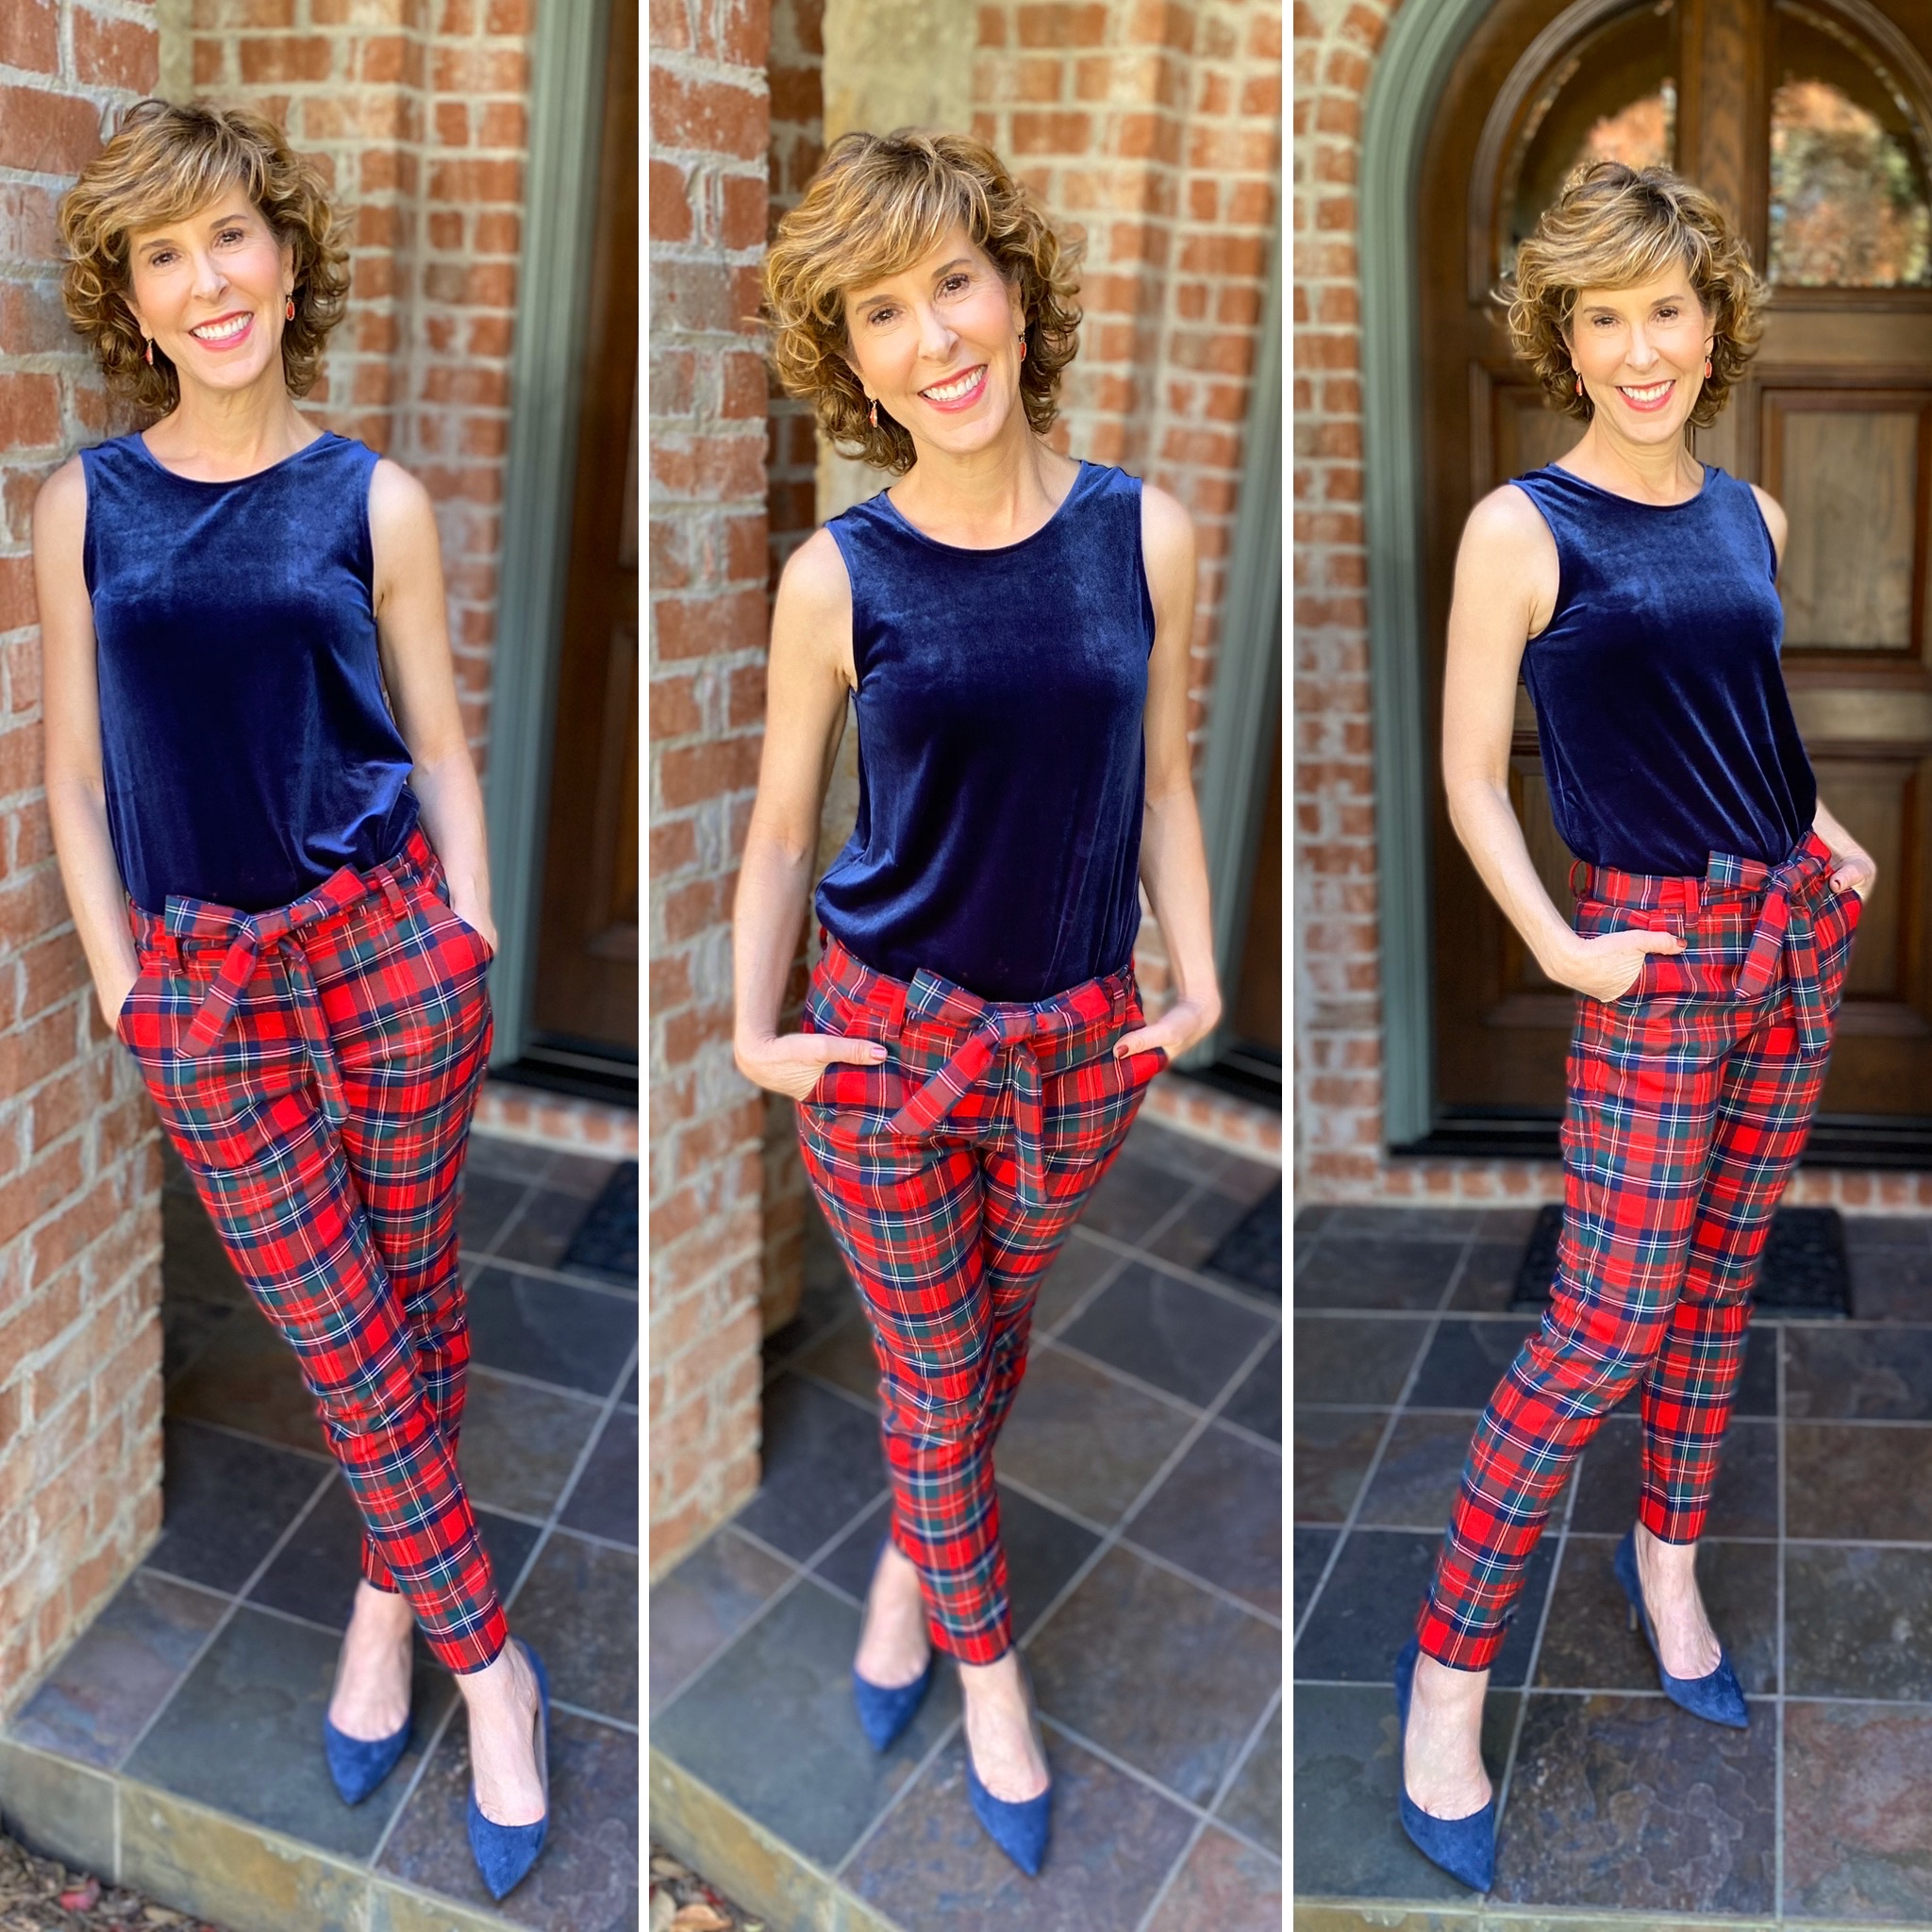 3 photo collage of woman wearing a blue velvet tank and plaid pants holiday party look